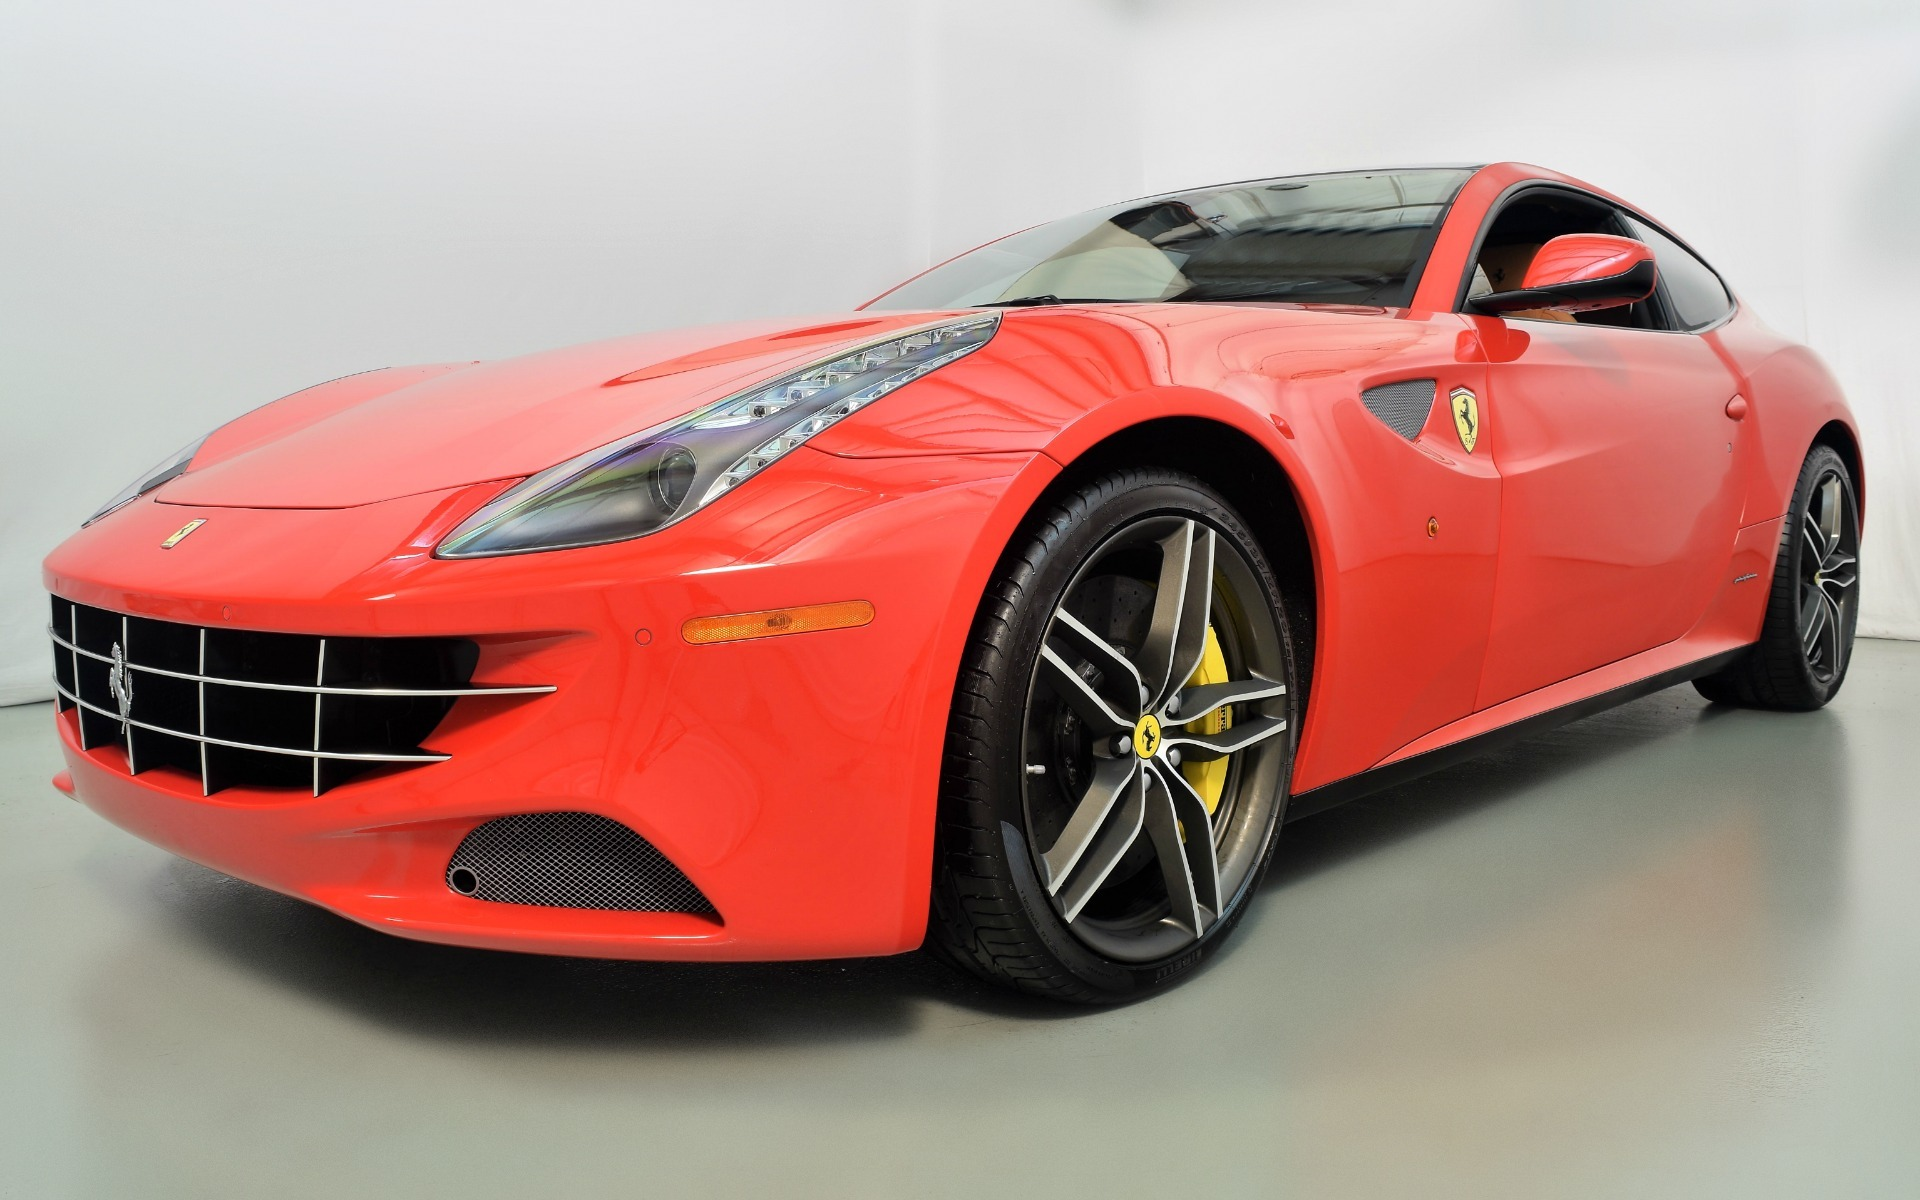 2016 ferrari ff for sale in norwell ma 214010 mclaren boston. Black Bedroom Furniture Sets. Home Design Ideas